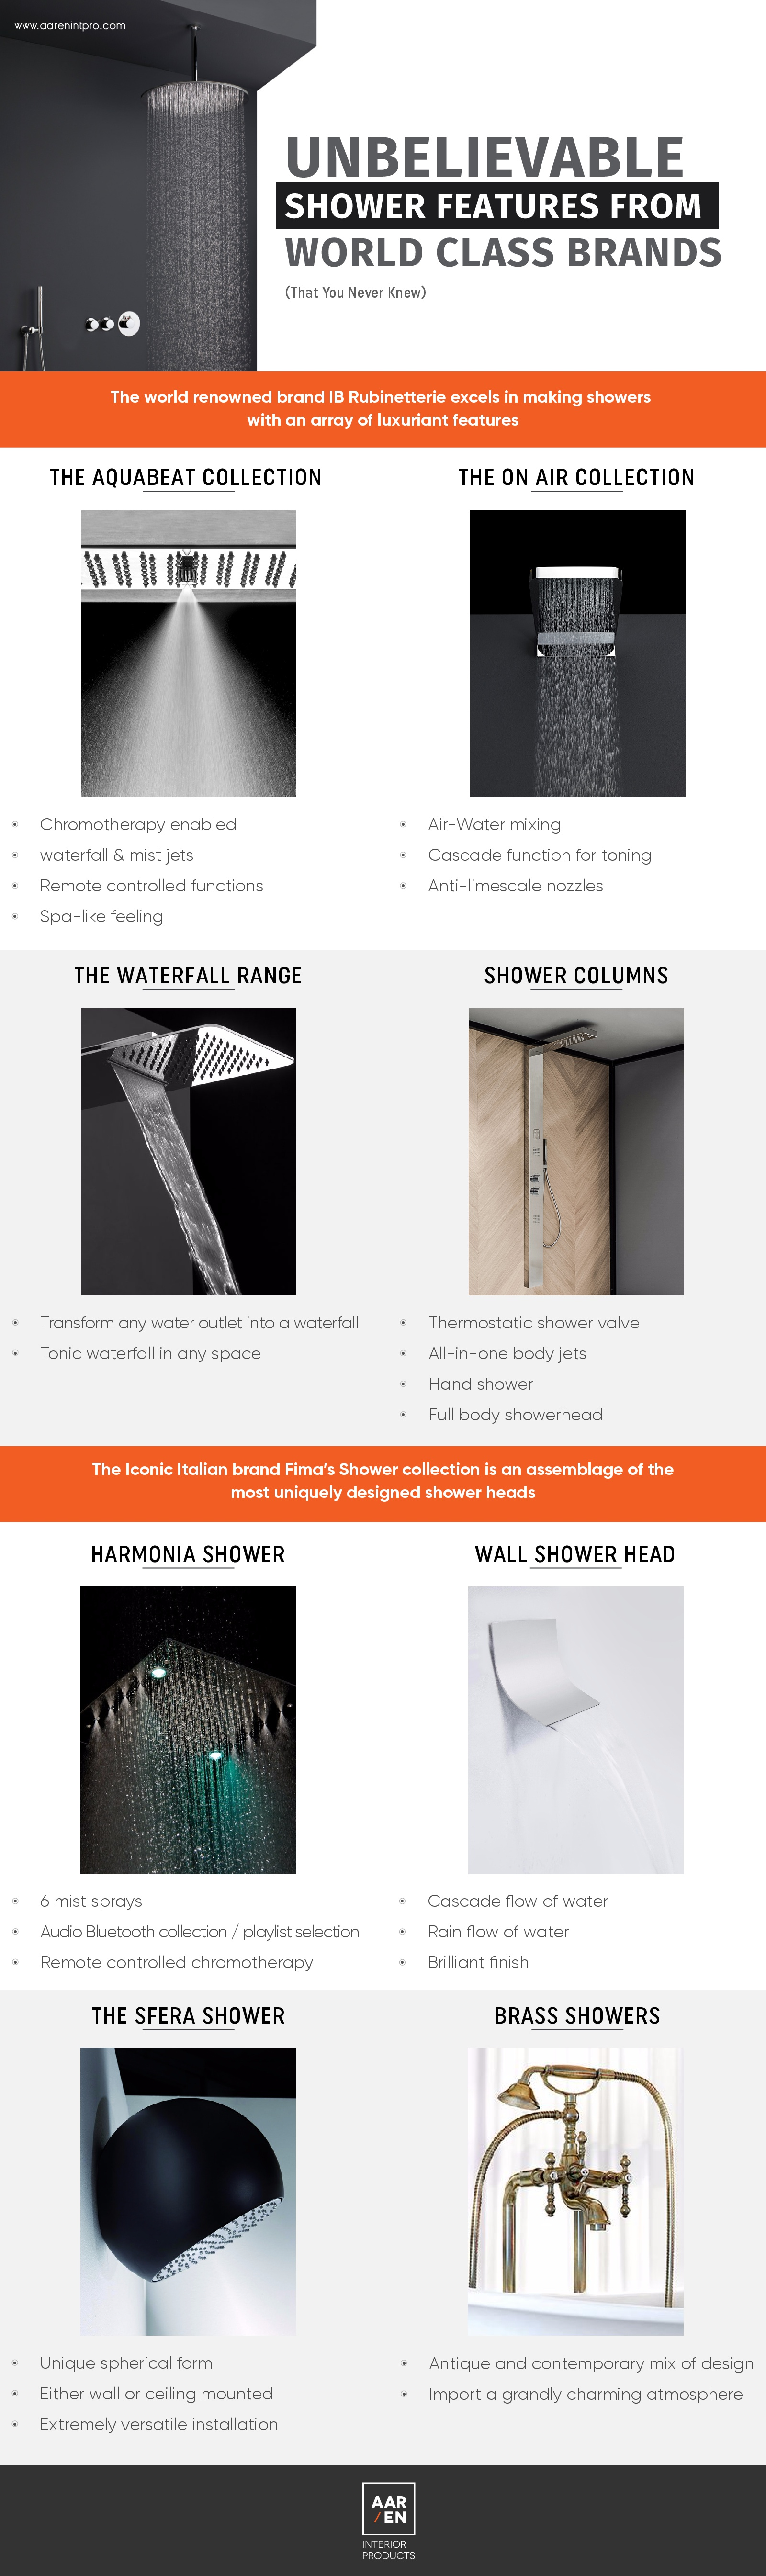 Luxury Bathroom Showers | Unbelievable Features from World Class Brands